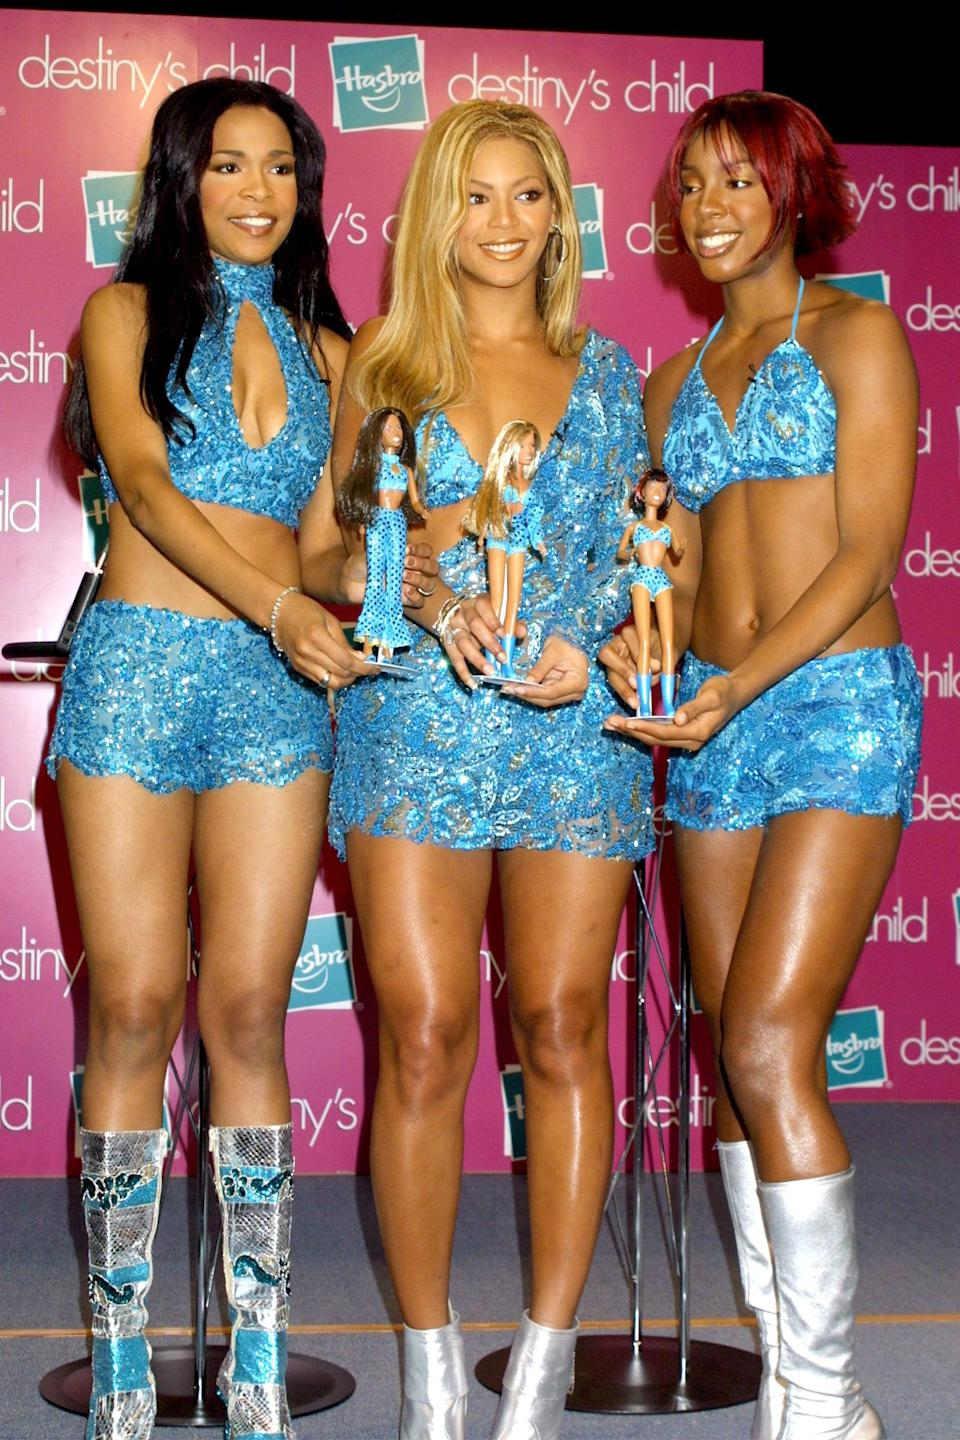 <p>How amazing are these bright blue sets that they wore at a Barbie event in 2000?</p>